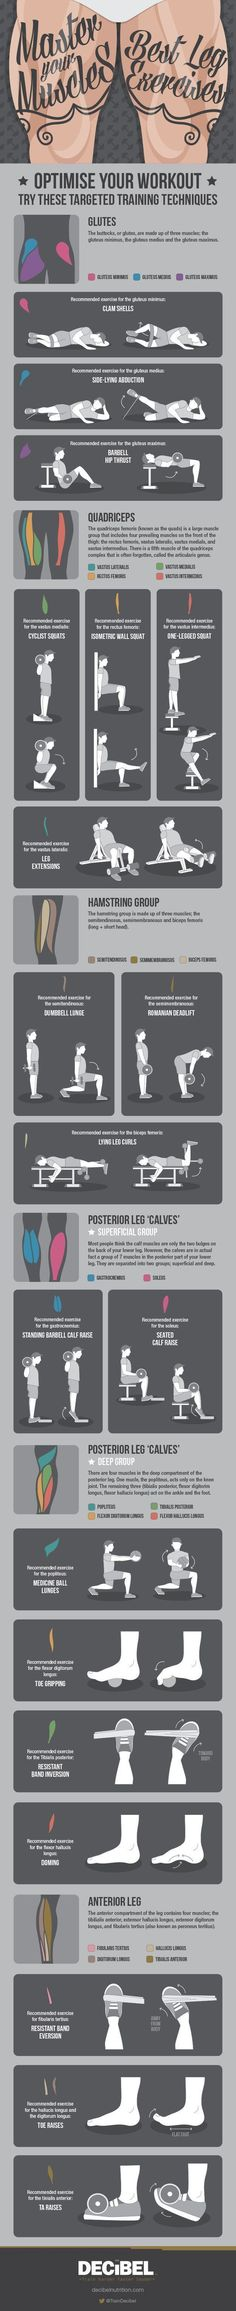 How to work out every single muscle in your legs...